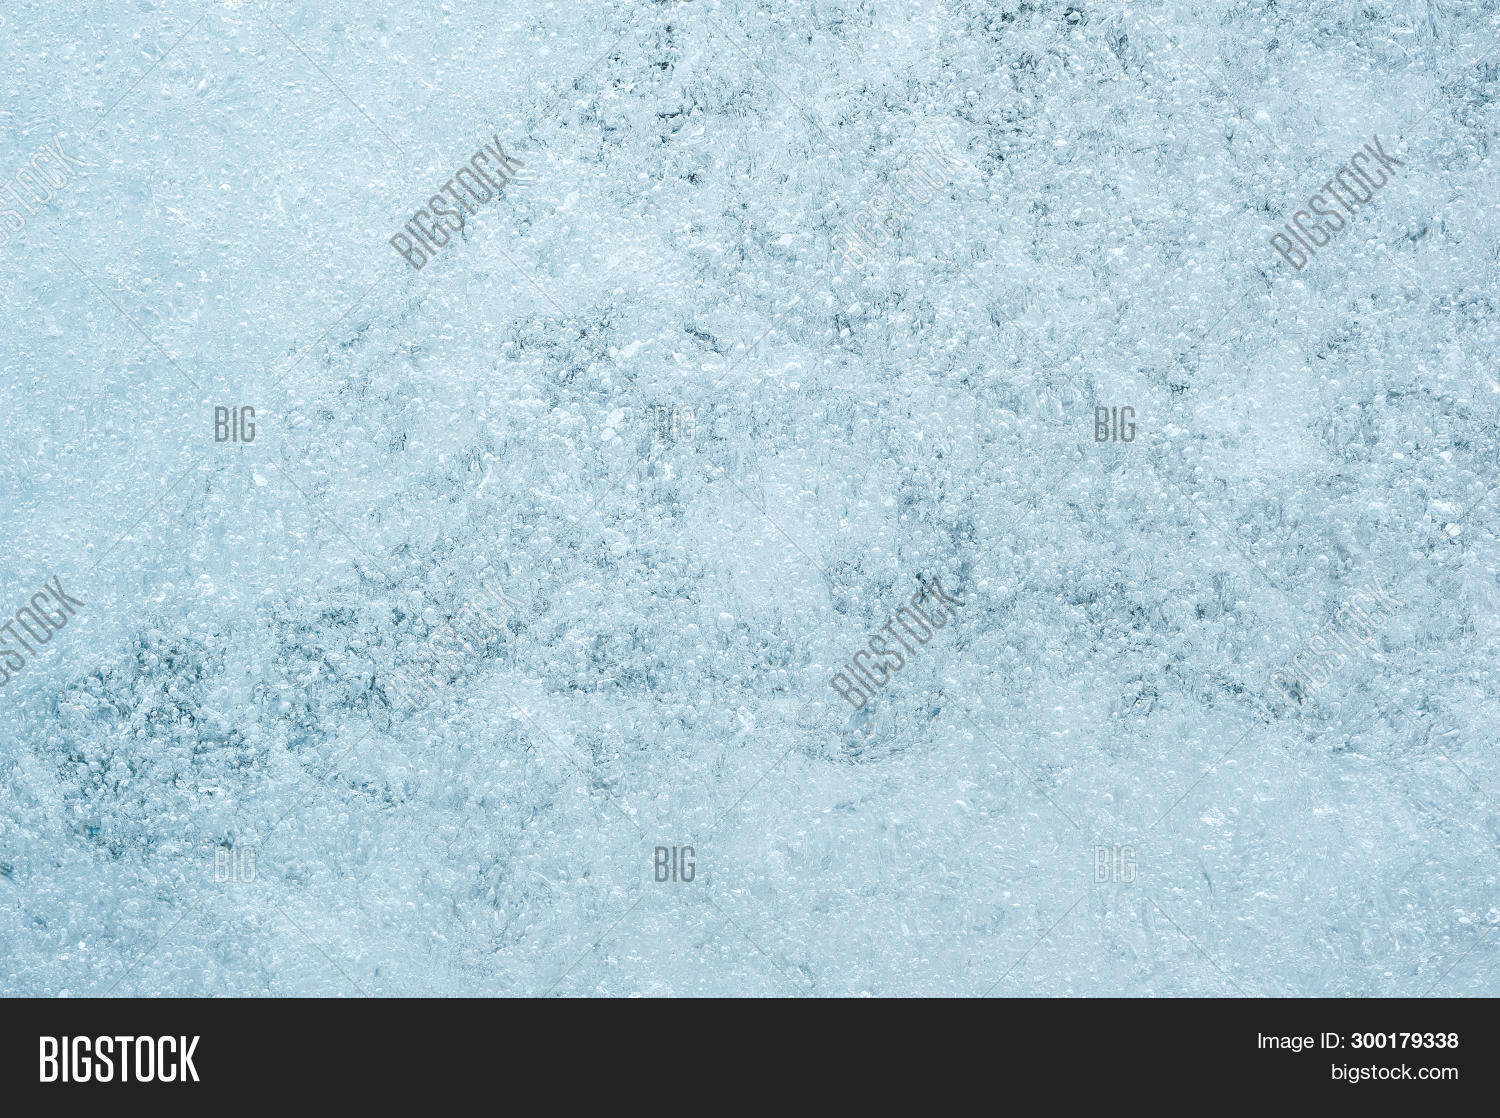 abstract,arctic,background,blue,bright,bubbles,chilled,christmas,clear,cocktail,cold,cool,cracks,crystal,cube,design,fresh,frigid,frost,frozen,glacier,heat,horizontal,ice,icicle,icy,light,liquid,macro,natural,nature,pattern,refreshing,refrigeration,season,shiny,snow,sparkle,structure,summer,surface,texture,textured,thirst,transparent,vibrant,wallpaper,water,white,winter